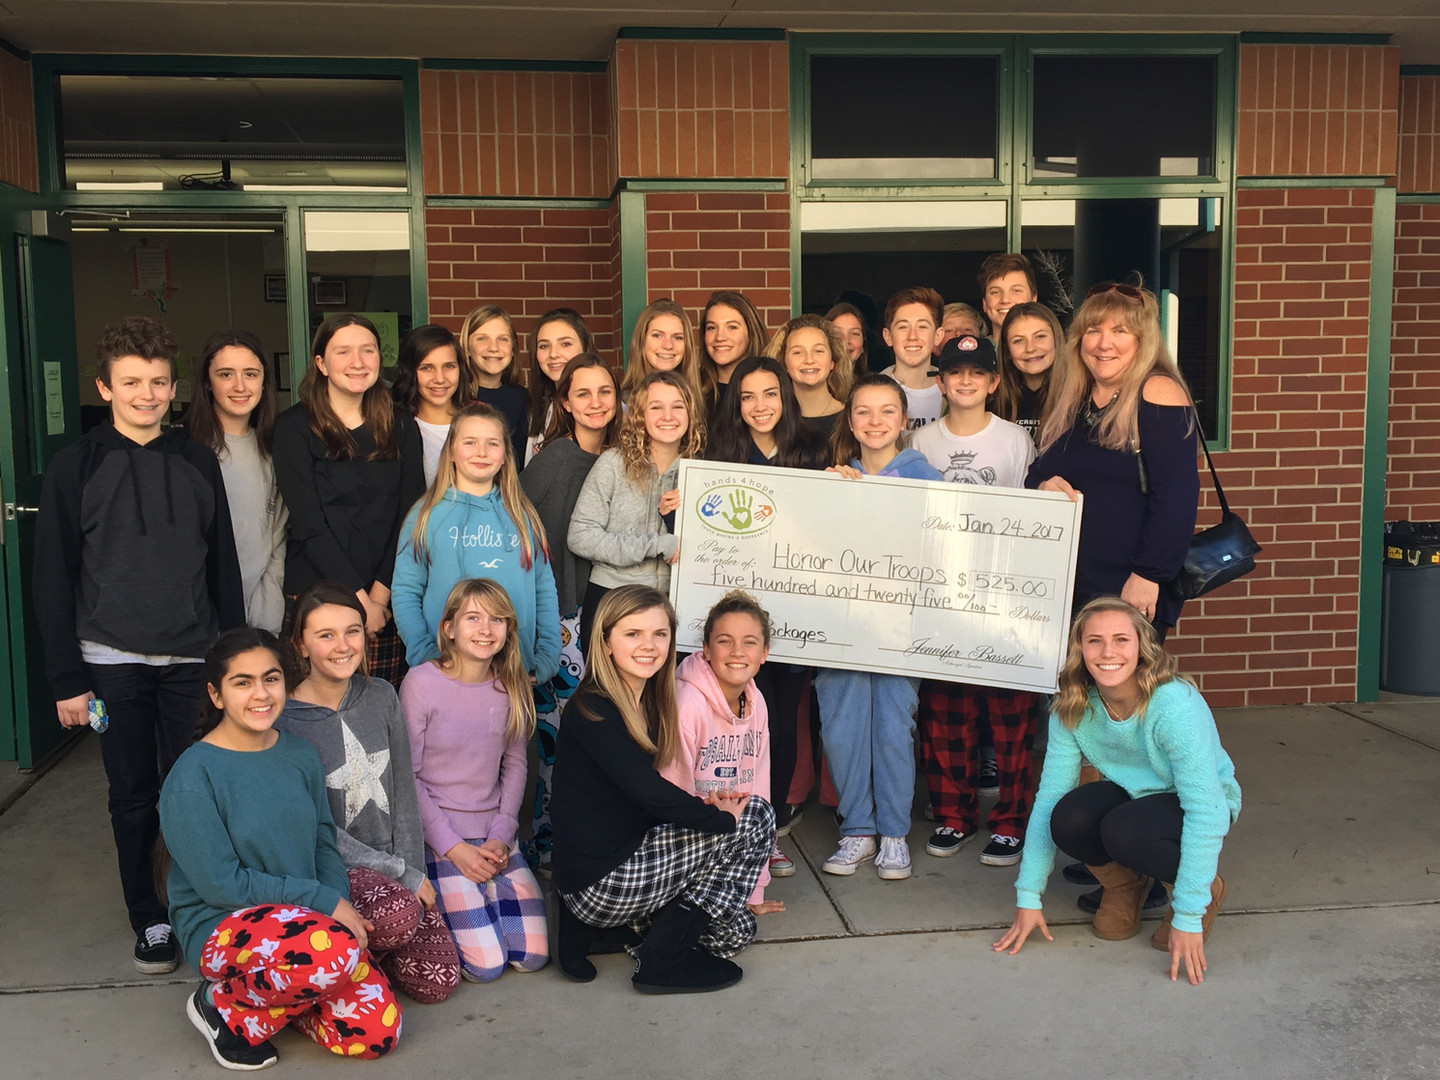 Rolling Hills Middle School   Providing Check To Honor Our Troops